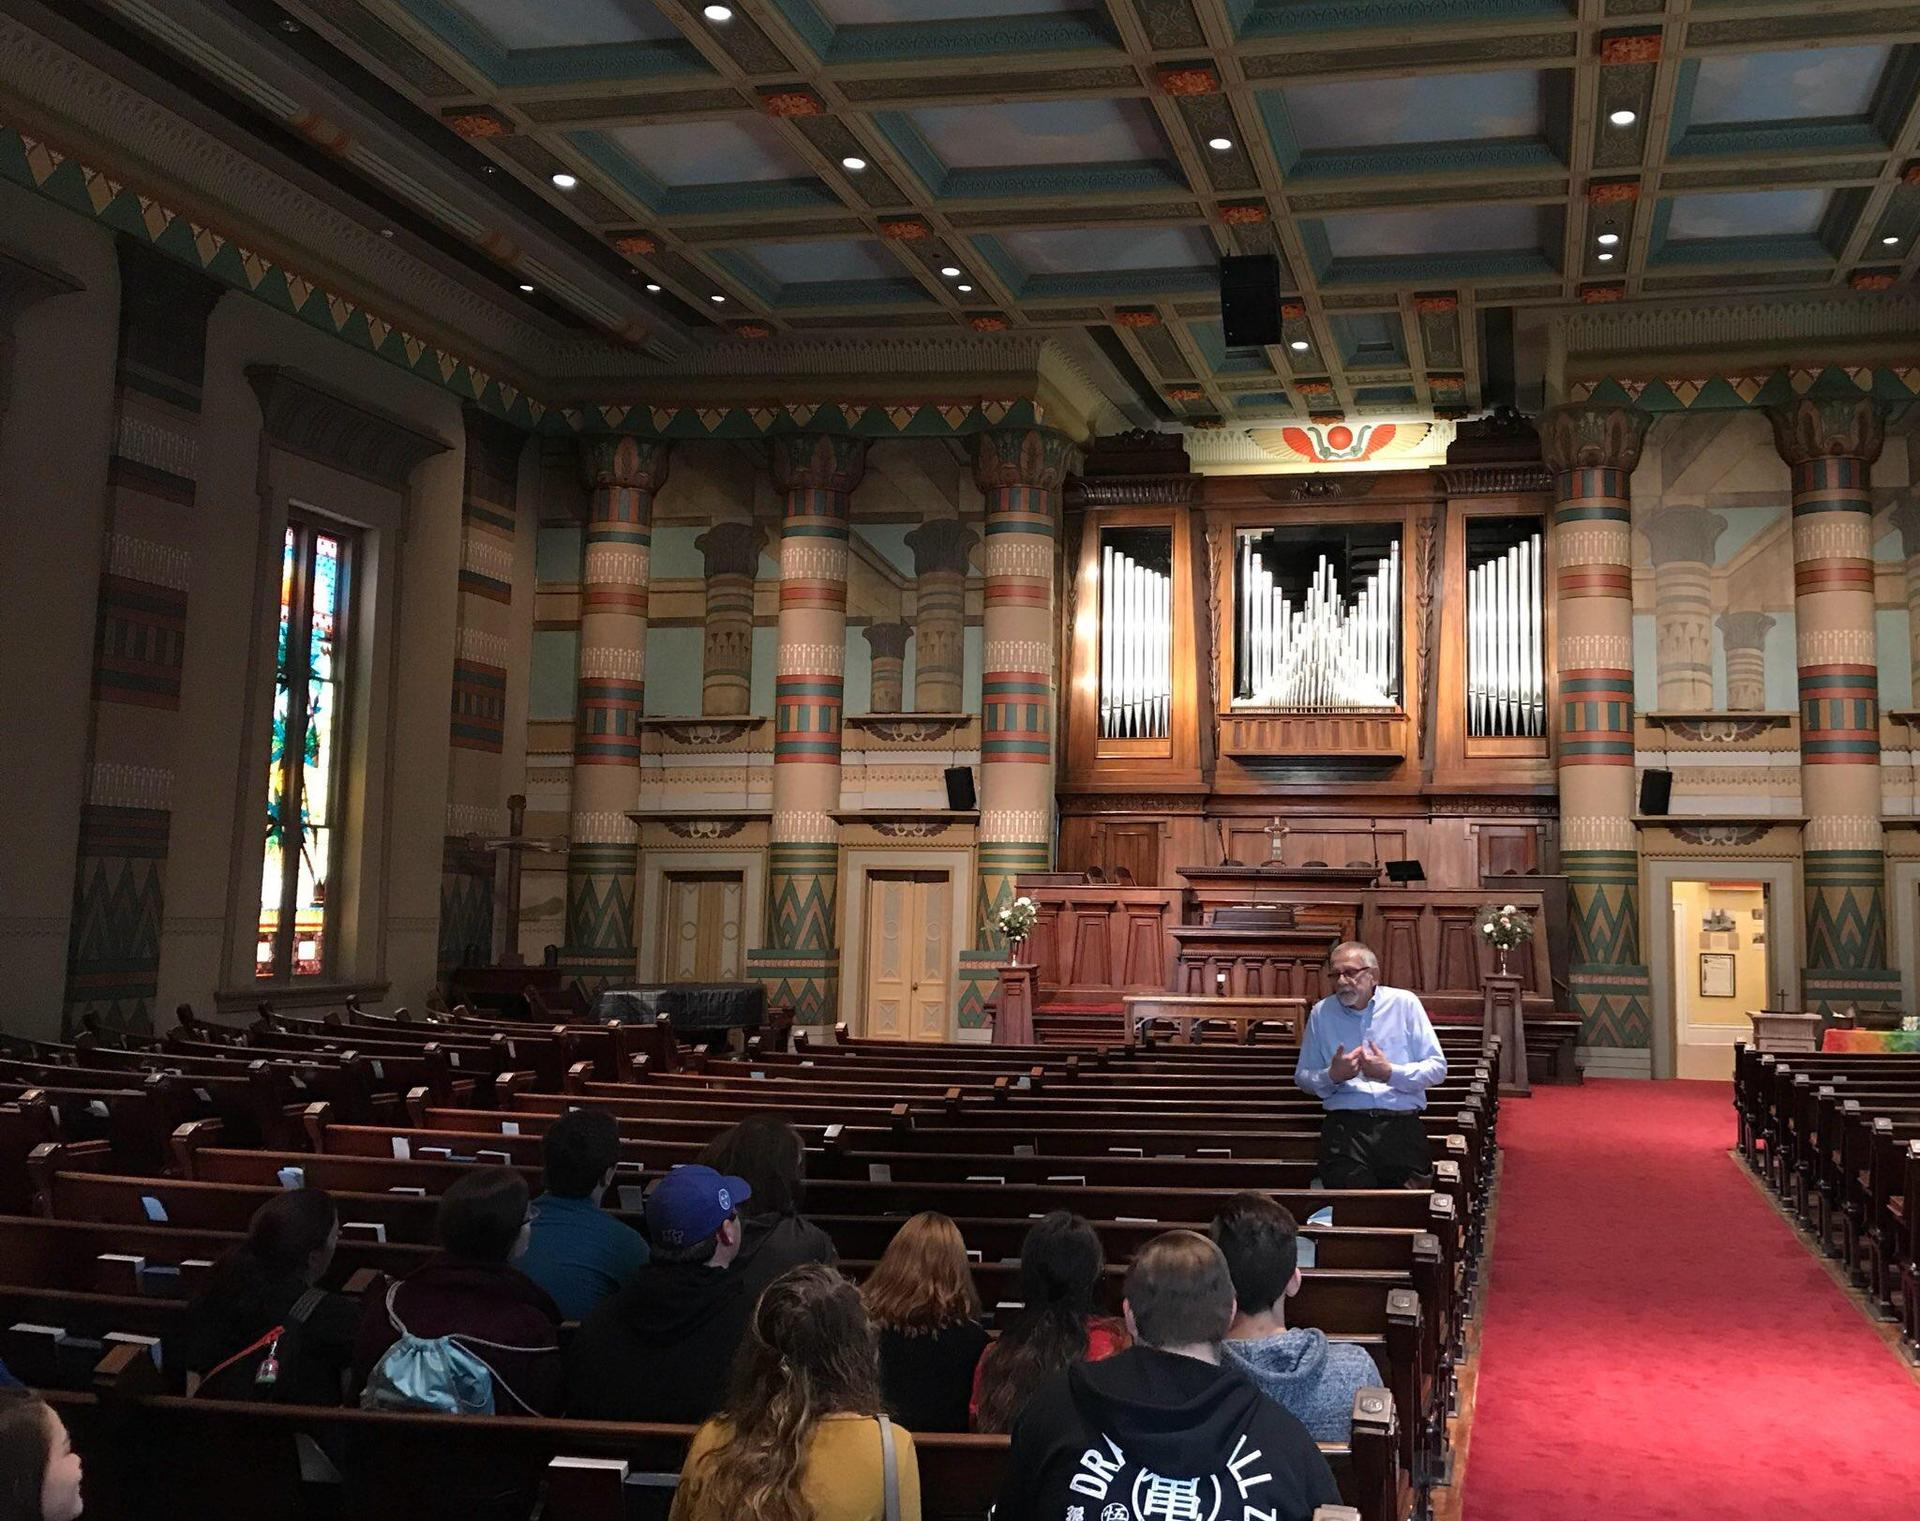 SCHS Timothy Club and Bible Class visiting Downtown Presbyterian Church and Congregation Sherith Israel, Nov 2017